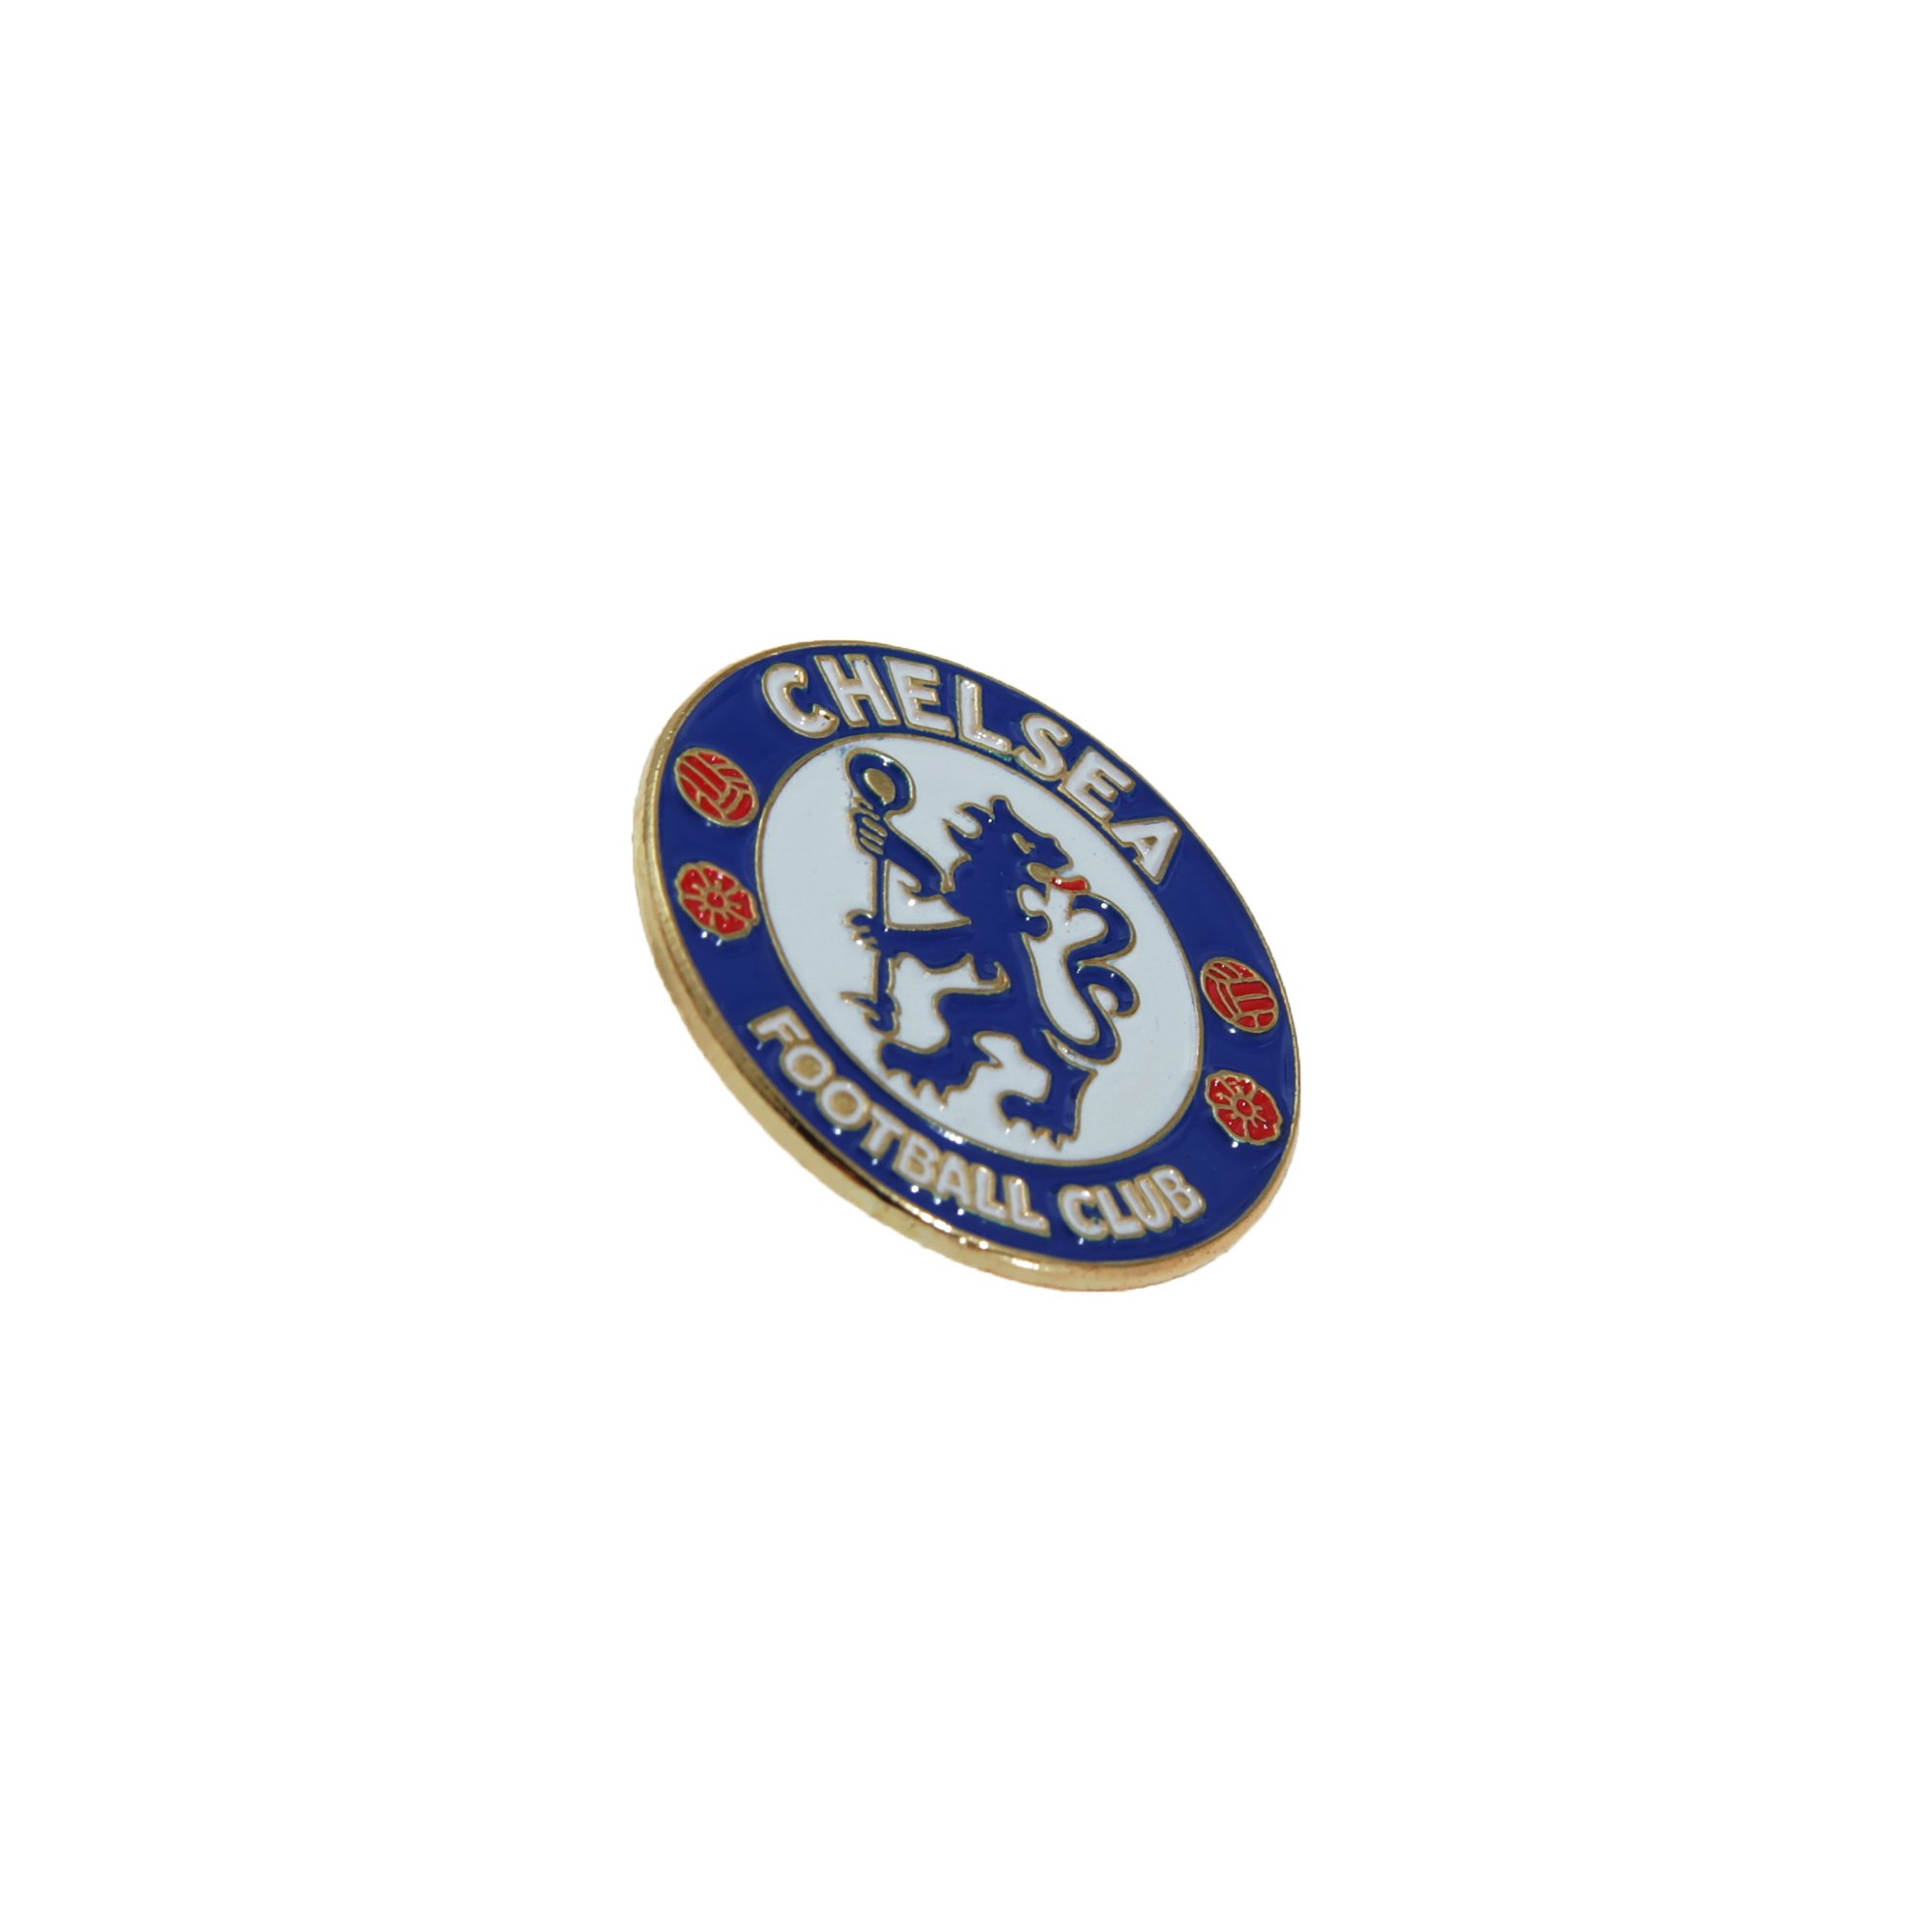 Chelsea FC Official Metal Football Crest Pin Badge